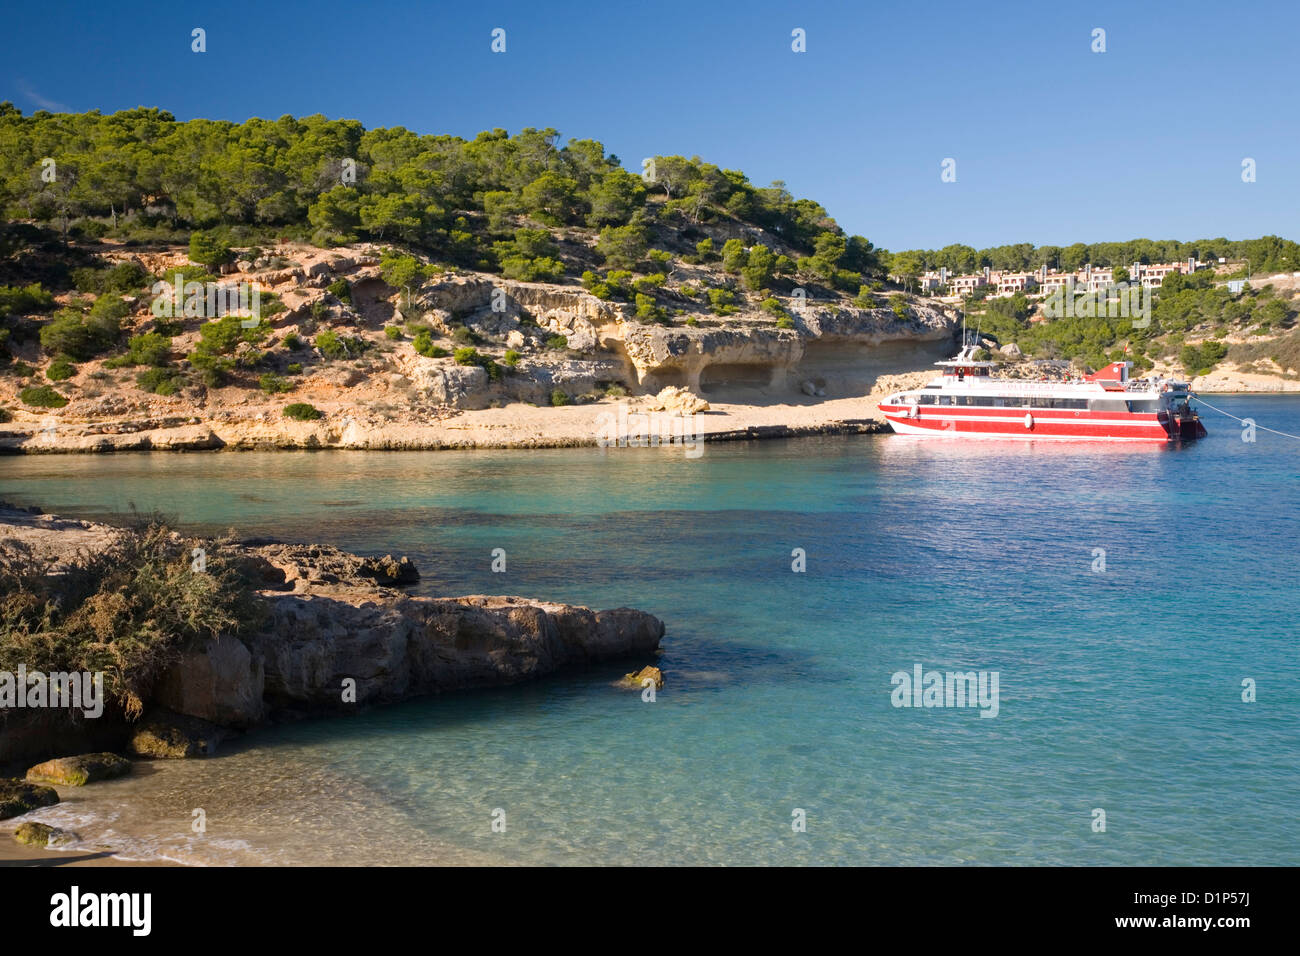 Magaluf, Mallorca, Balearic Islands, Spain. View across the turquoise waters of Cala Portals Vells, colourful boat - Stock Image